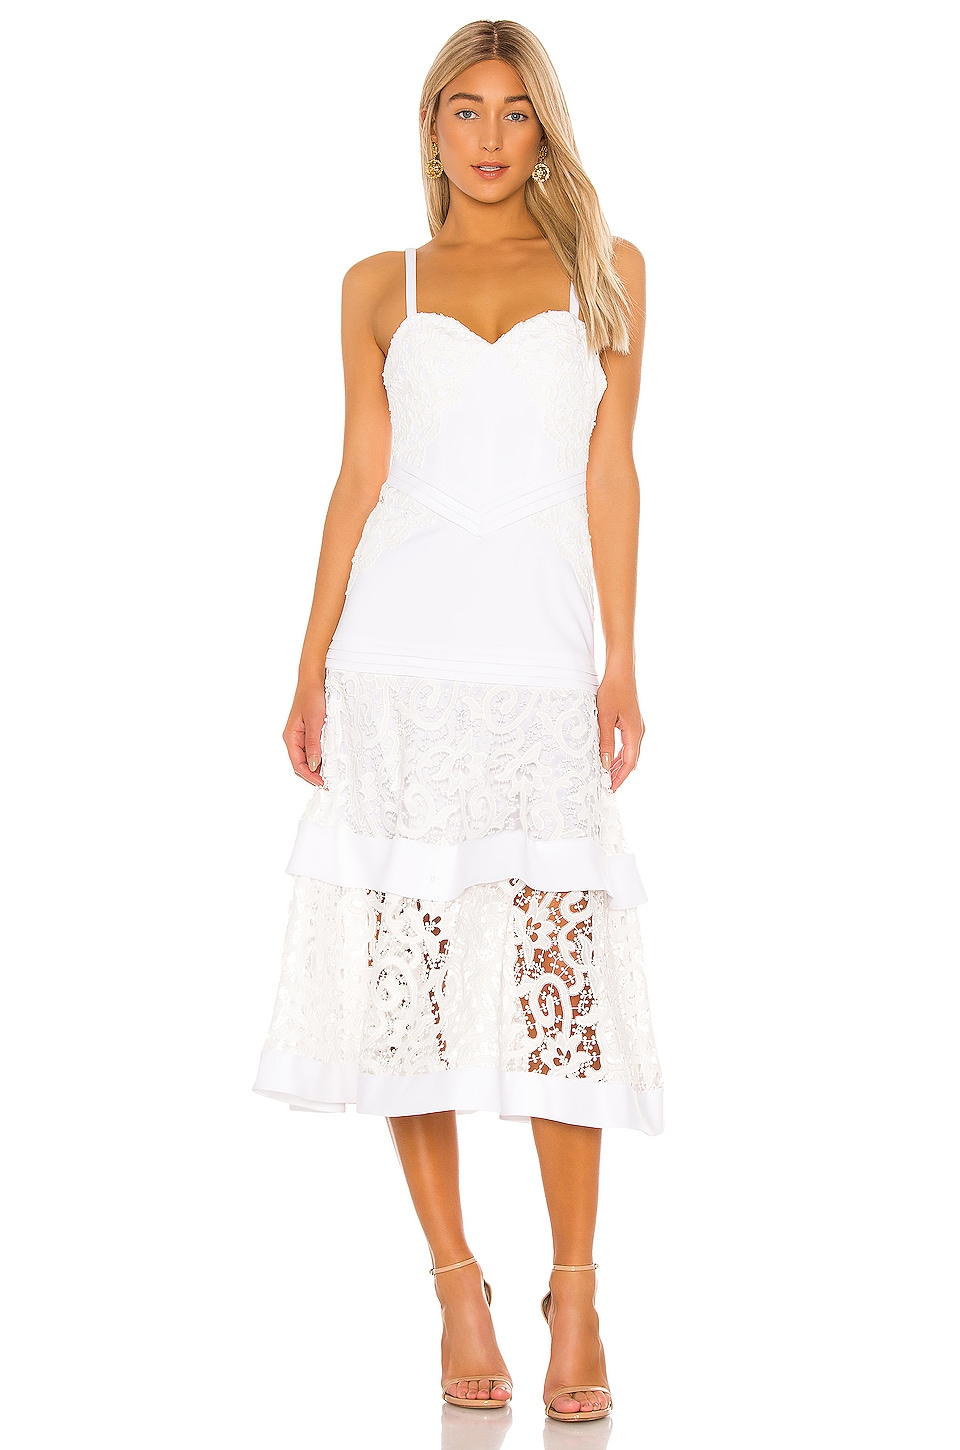 Alexis Harlowe Dress in White